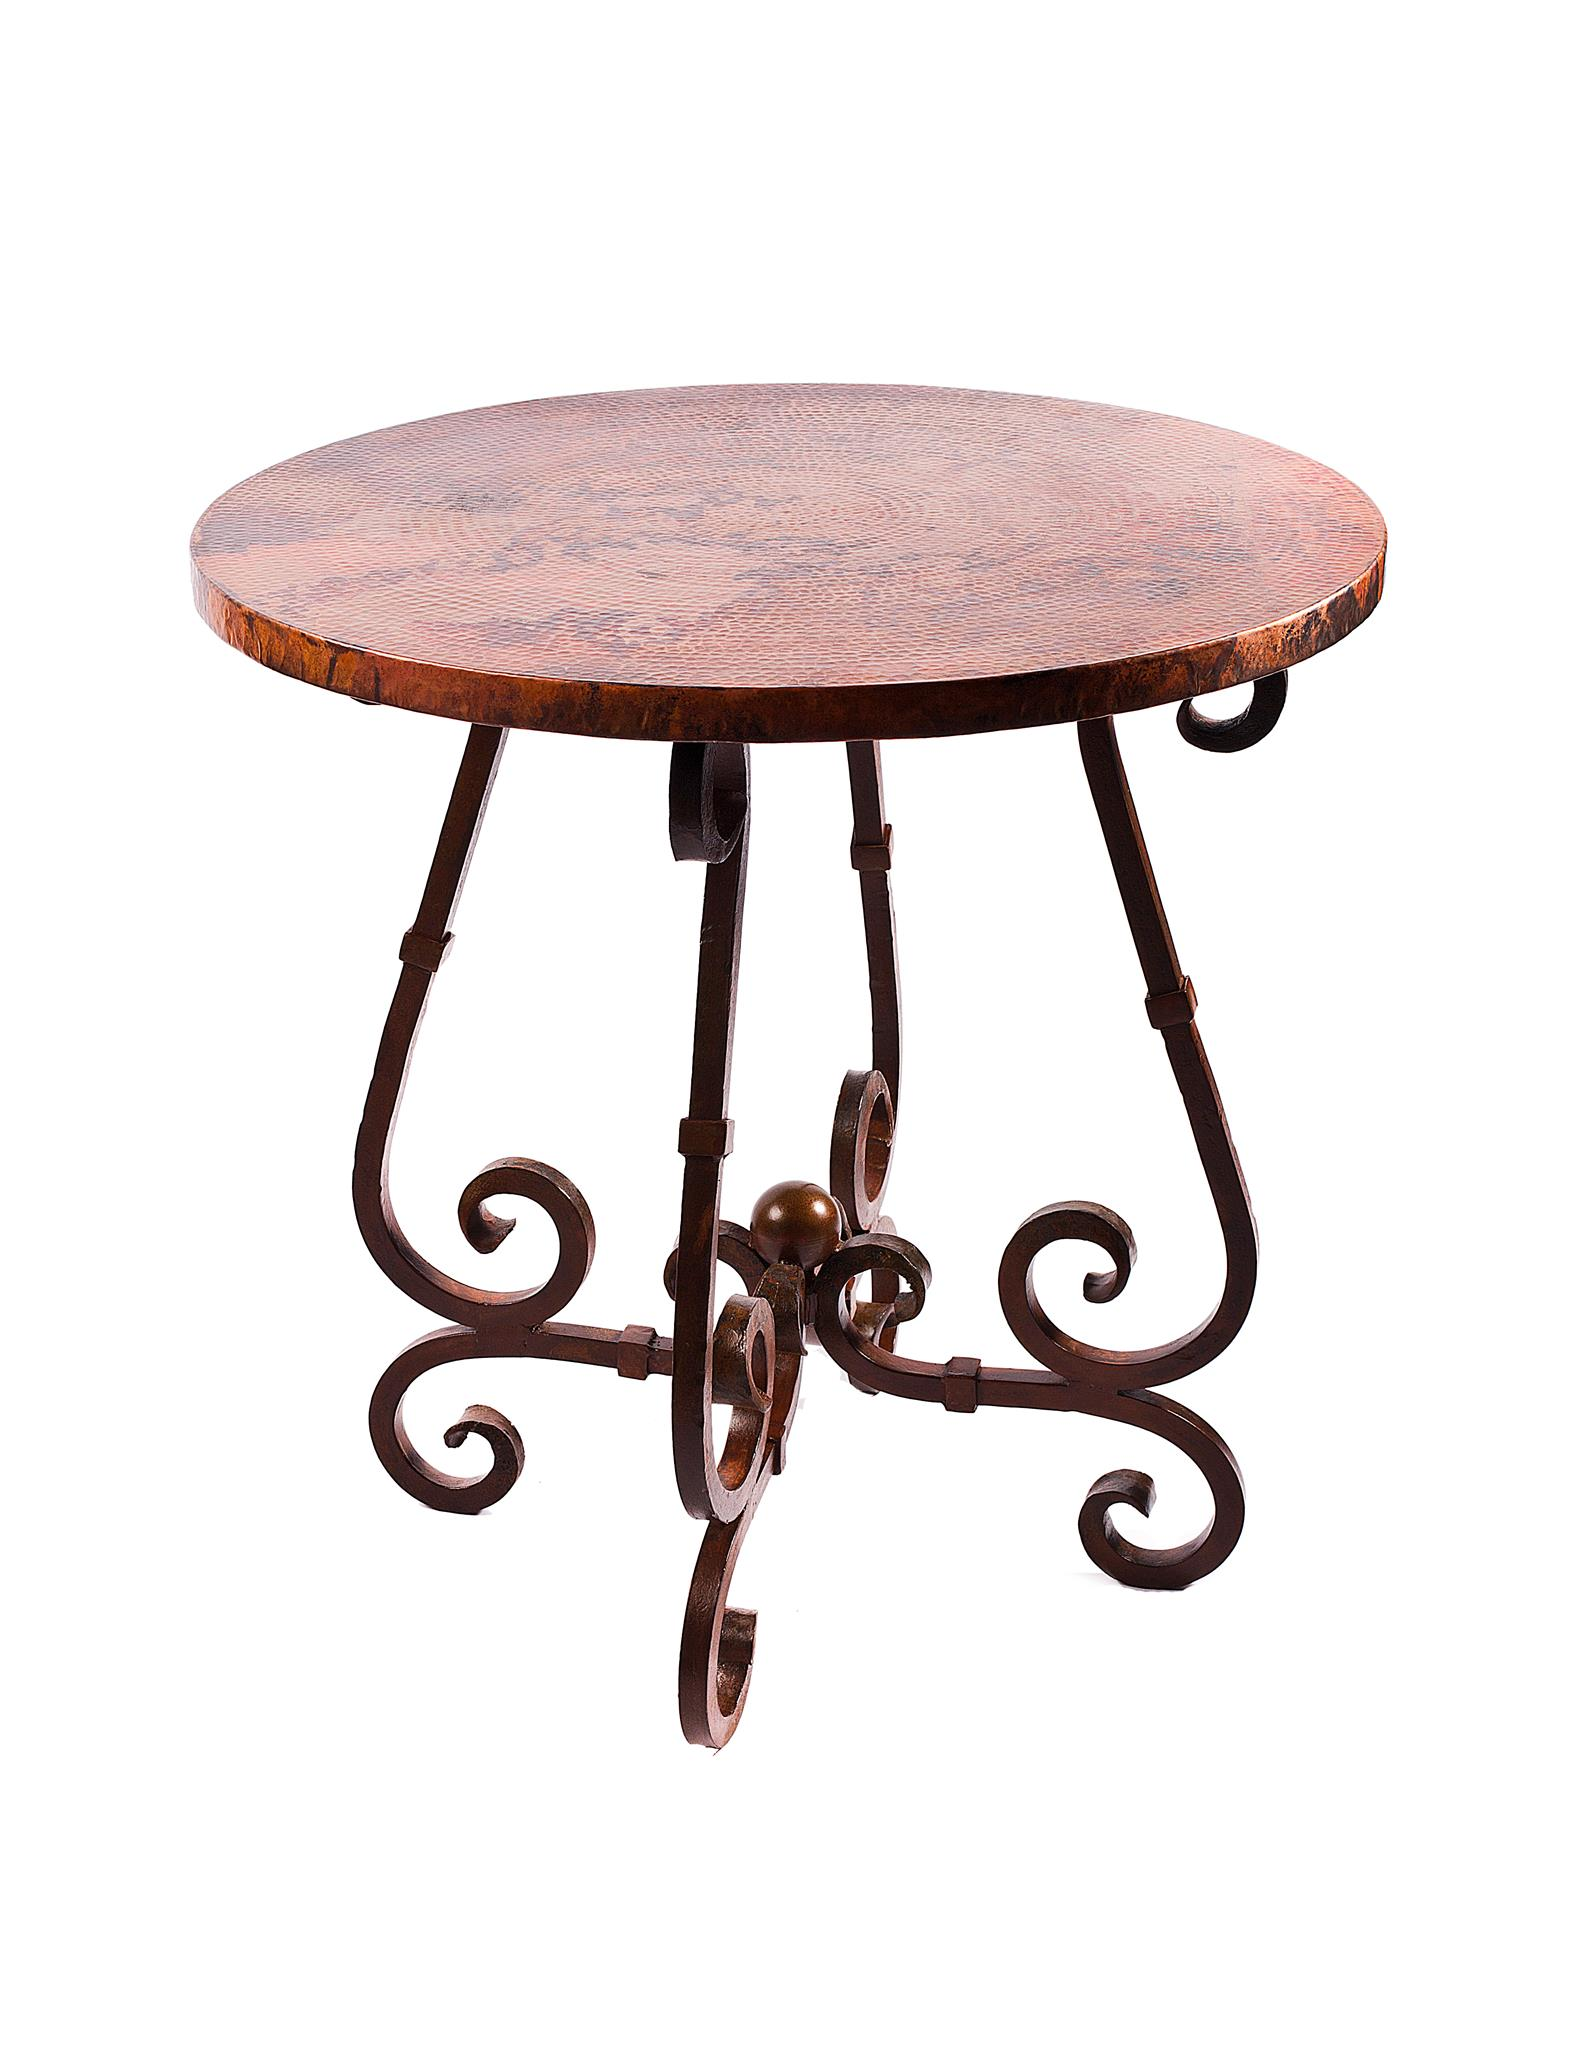 French bar table with 40 round hammered copper top boulevard french bar table with 40 round hammered copper top boulevard urban living watchthetrailerfo